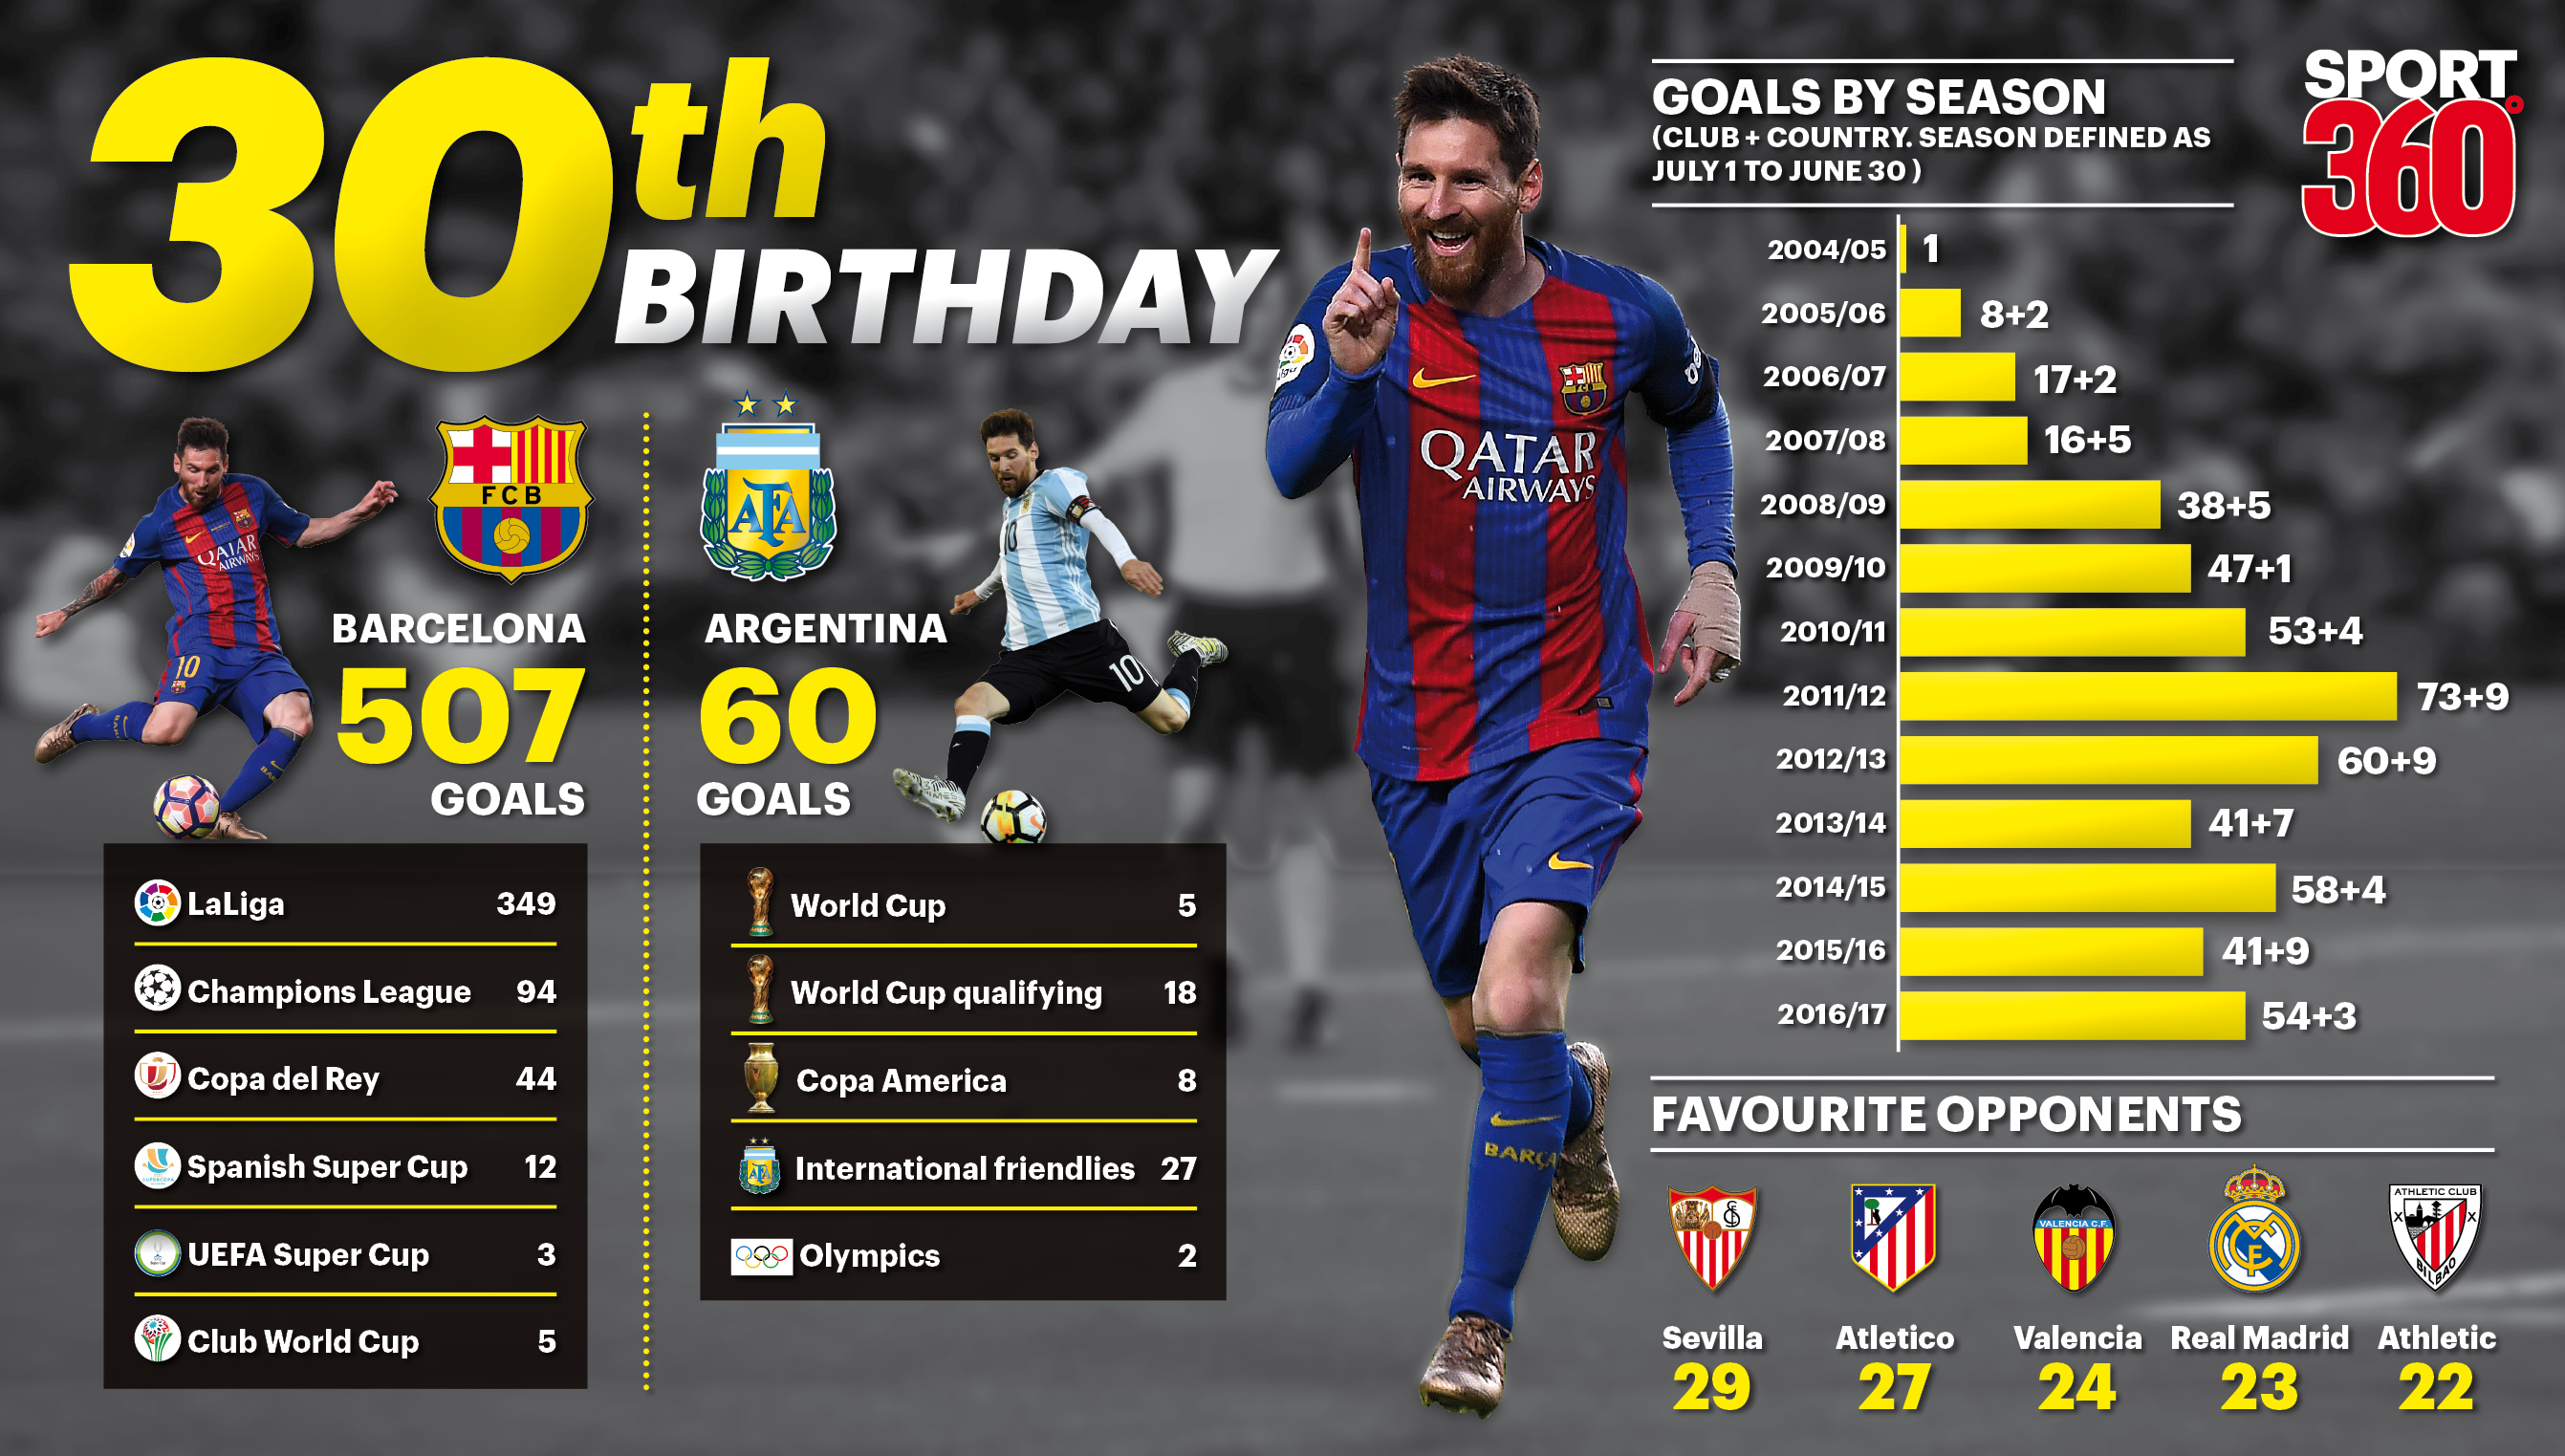 fa612087cee Lionel Messi turns 30: What's left for the Argentina and Barcelona  superstar to accomplish - Article - Sport360